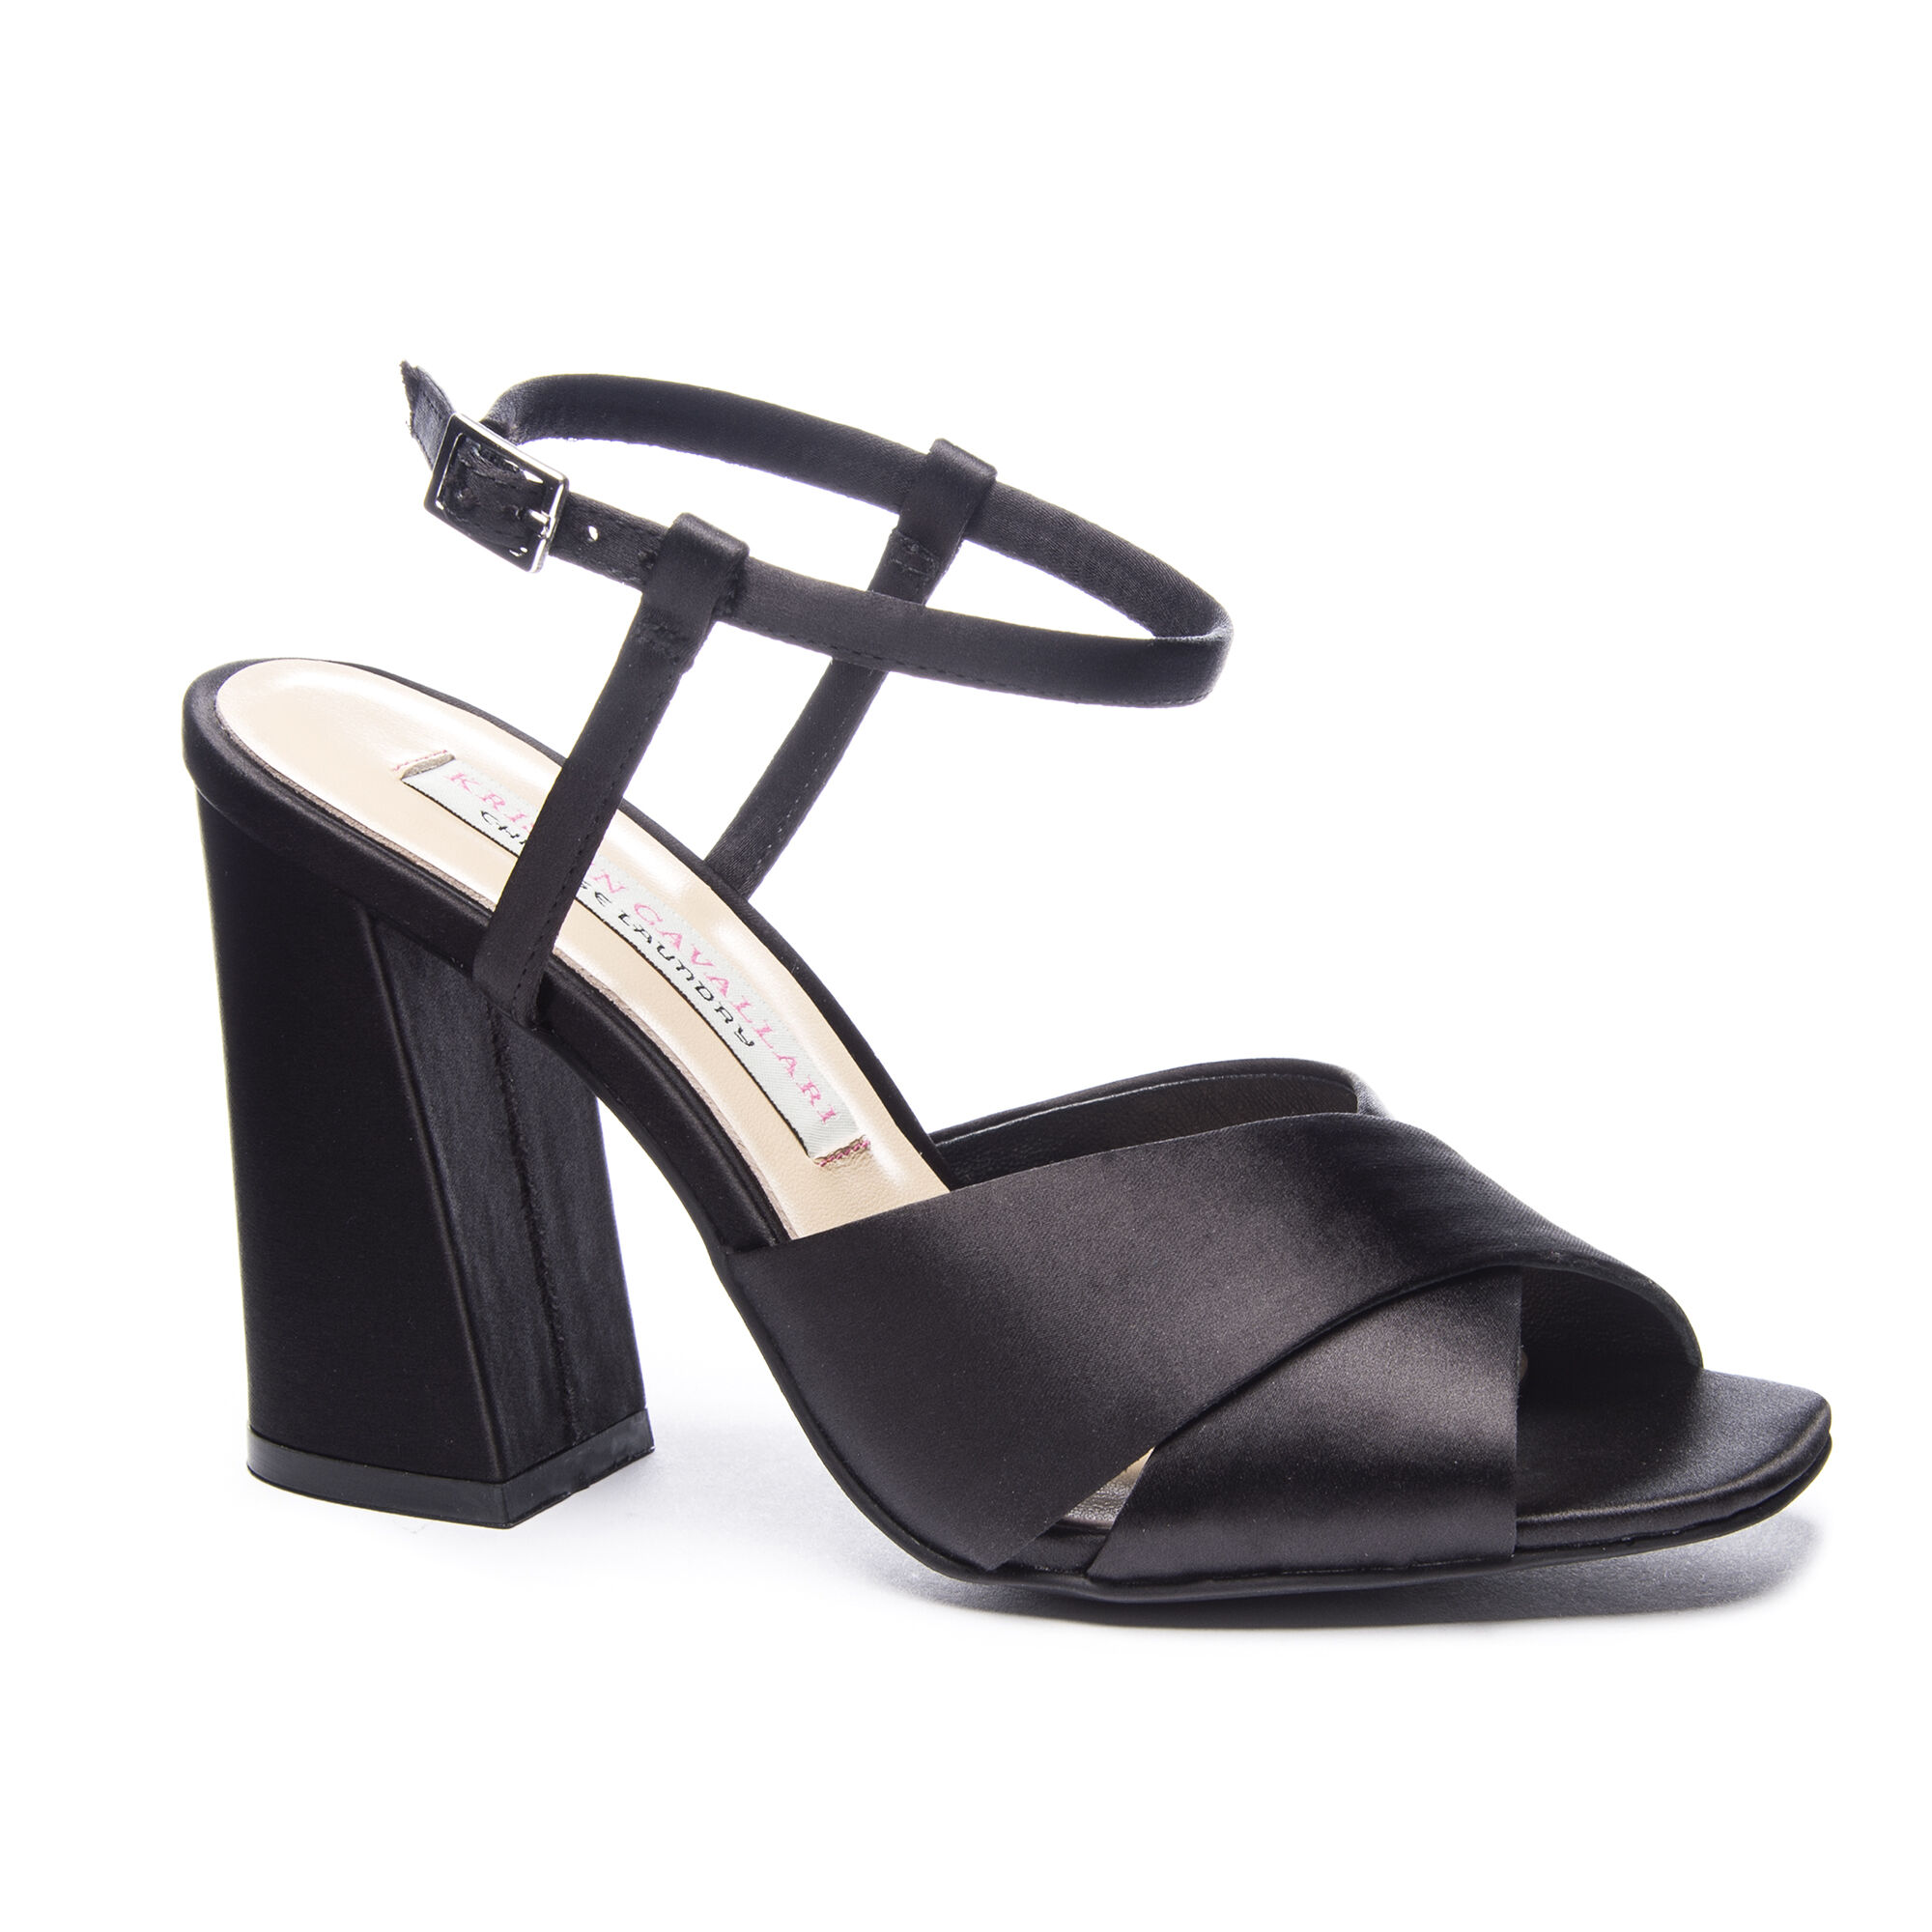 Kristin Cavallari by Chinese Laundry Low Light Cross Strap Sandal